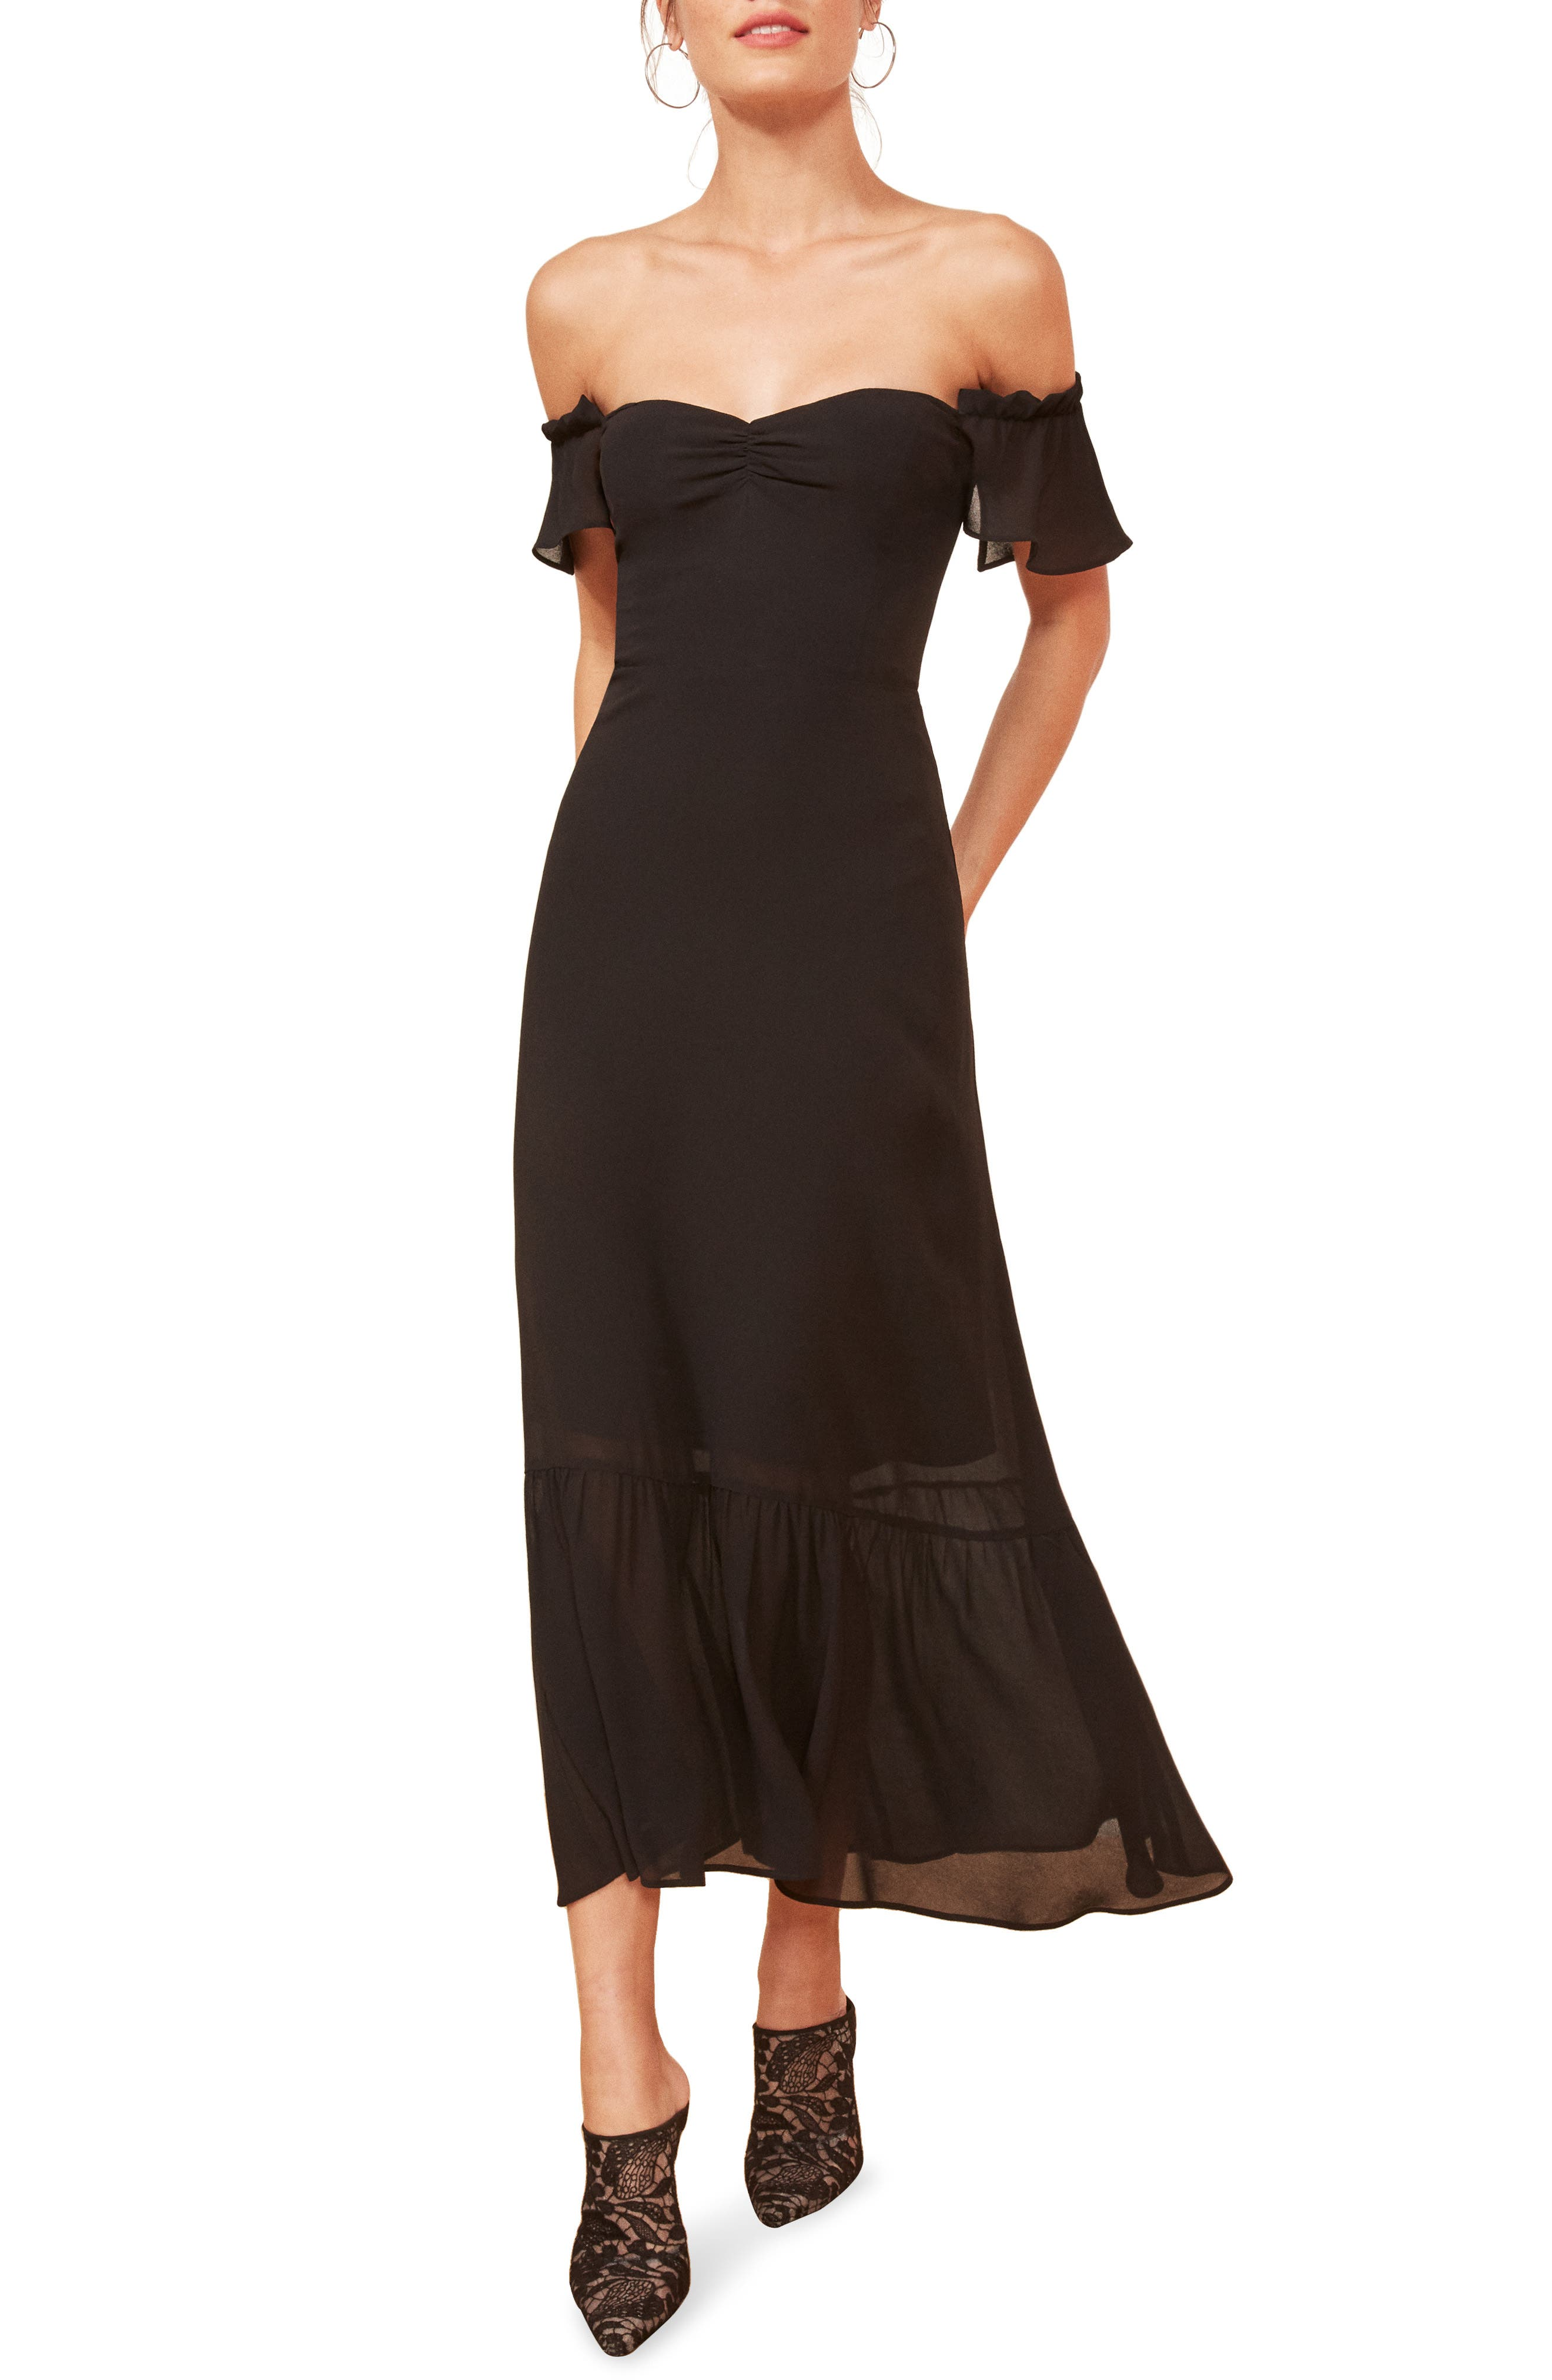 REFORMATION, Butterfly Midi Dress, Main thumbnail 1, color, BLACK